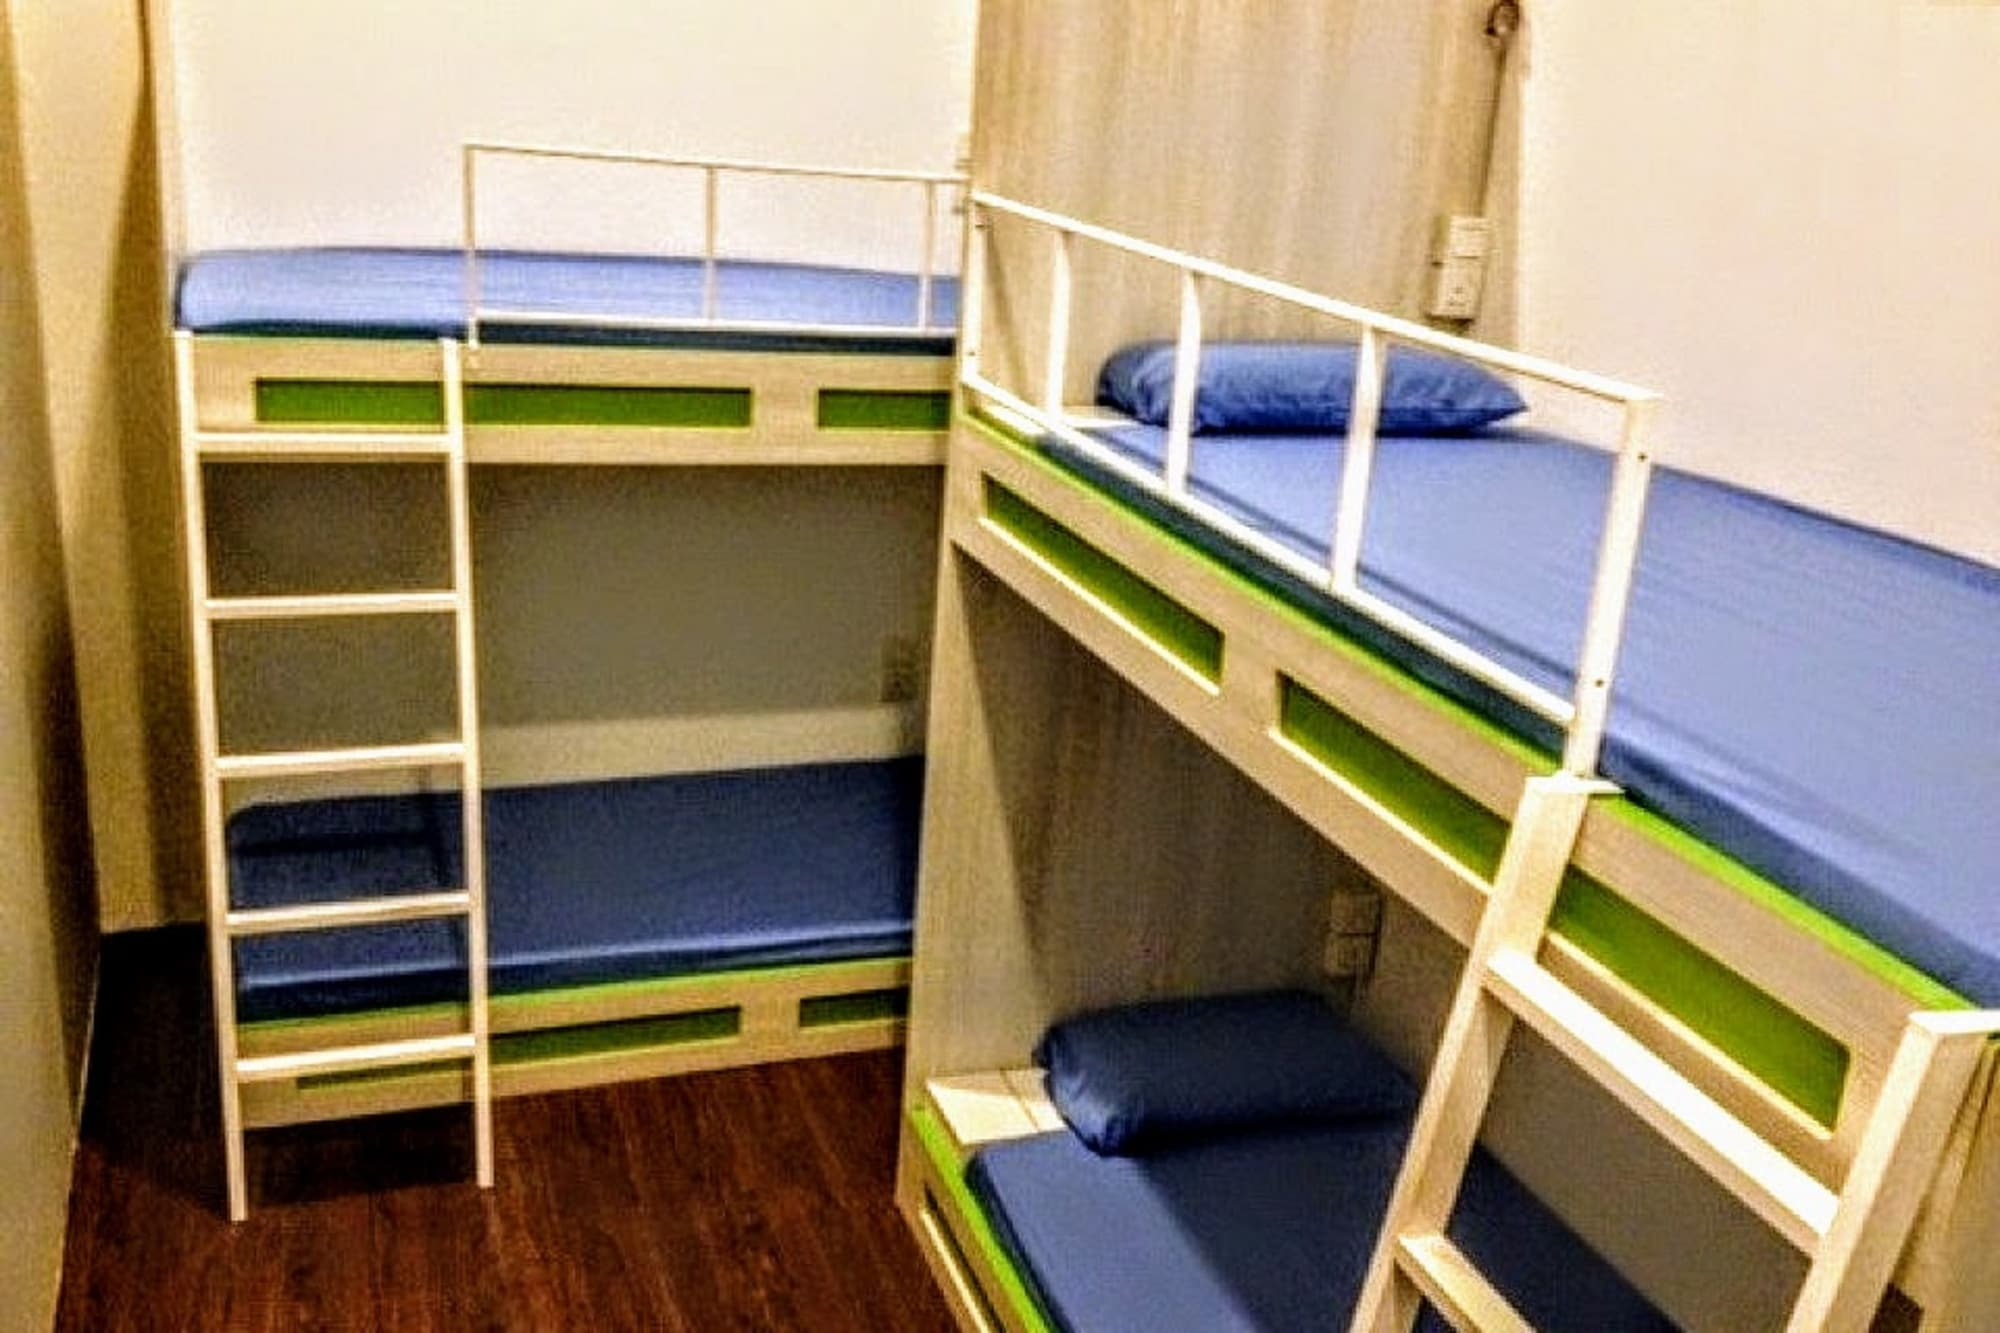 ZigZag Travellers Home (Formerly known as Marquee Guest Houzz), Kuala Lumpur